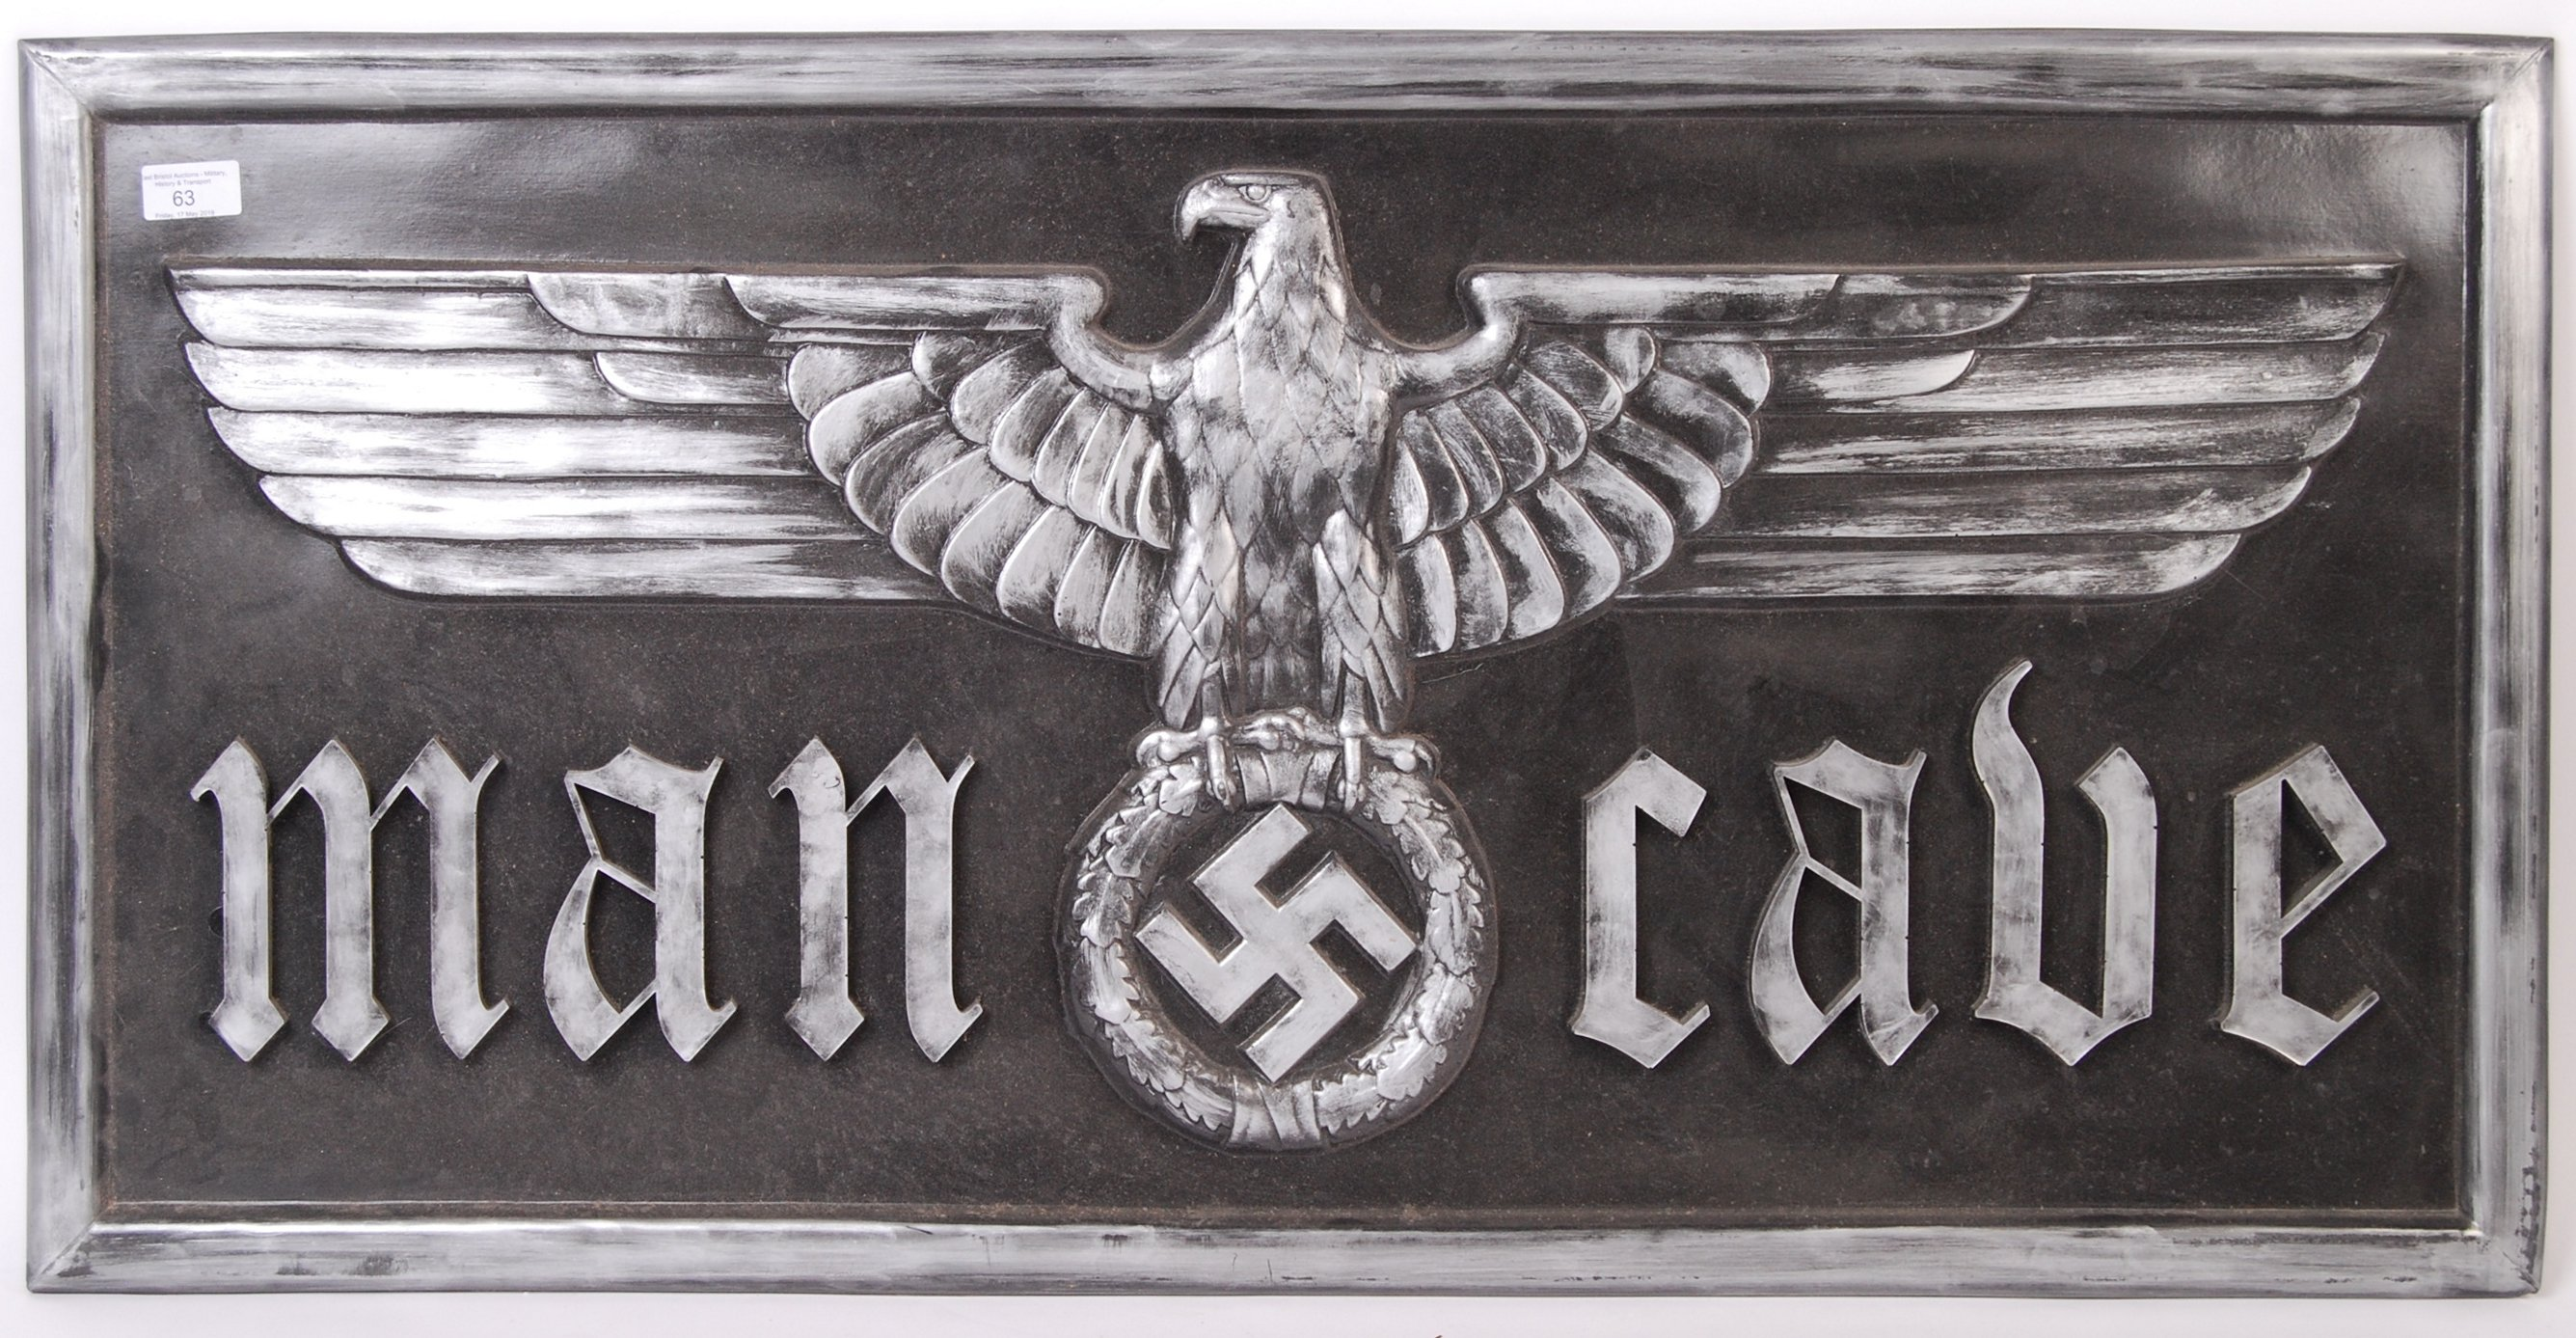 WWII SECOND WORLD WAR NAZI THIRD REICH INSPIRED WALL PLAQUE